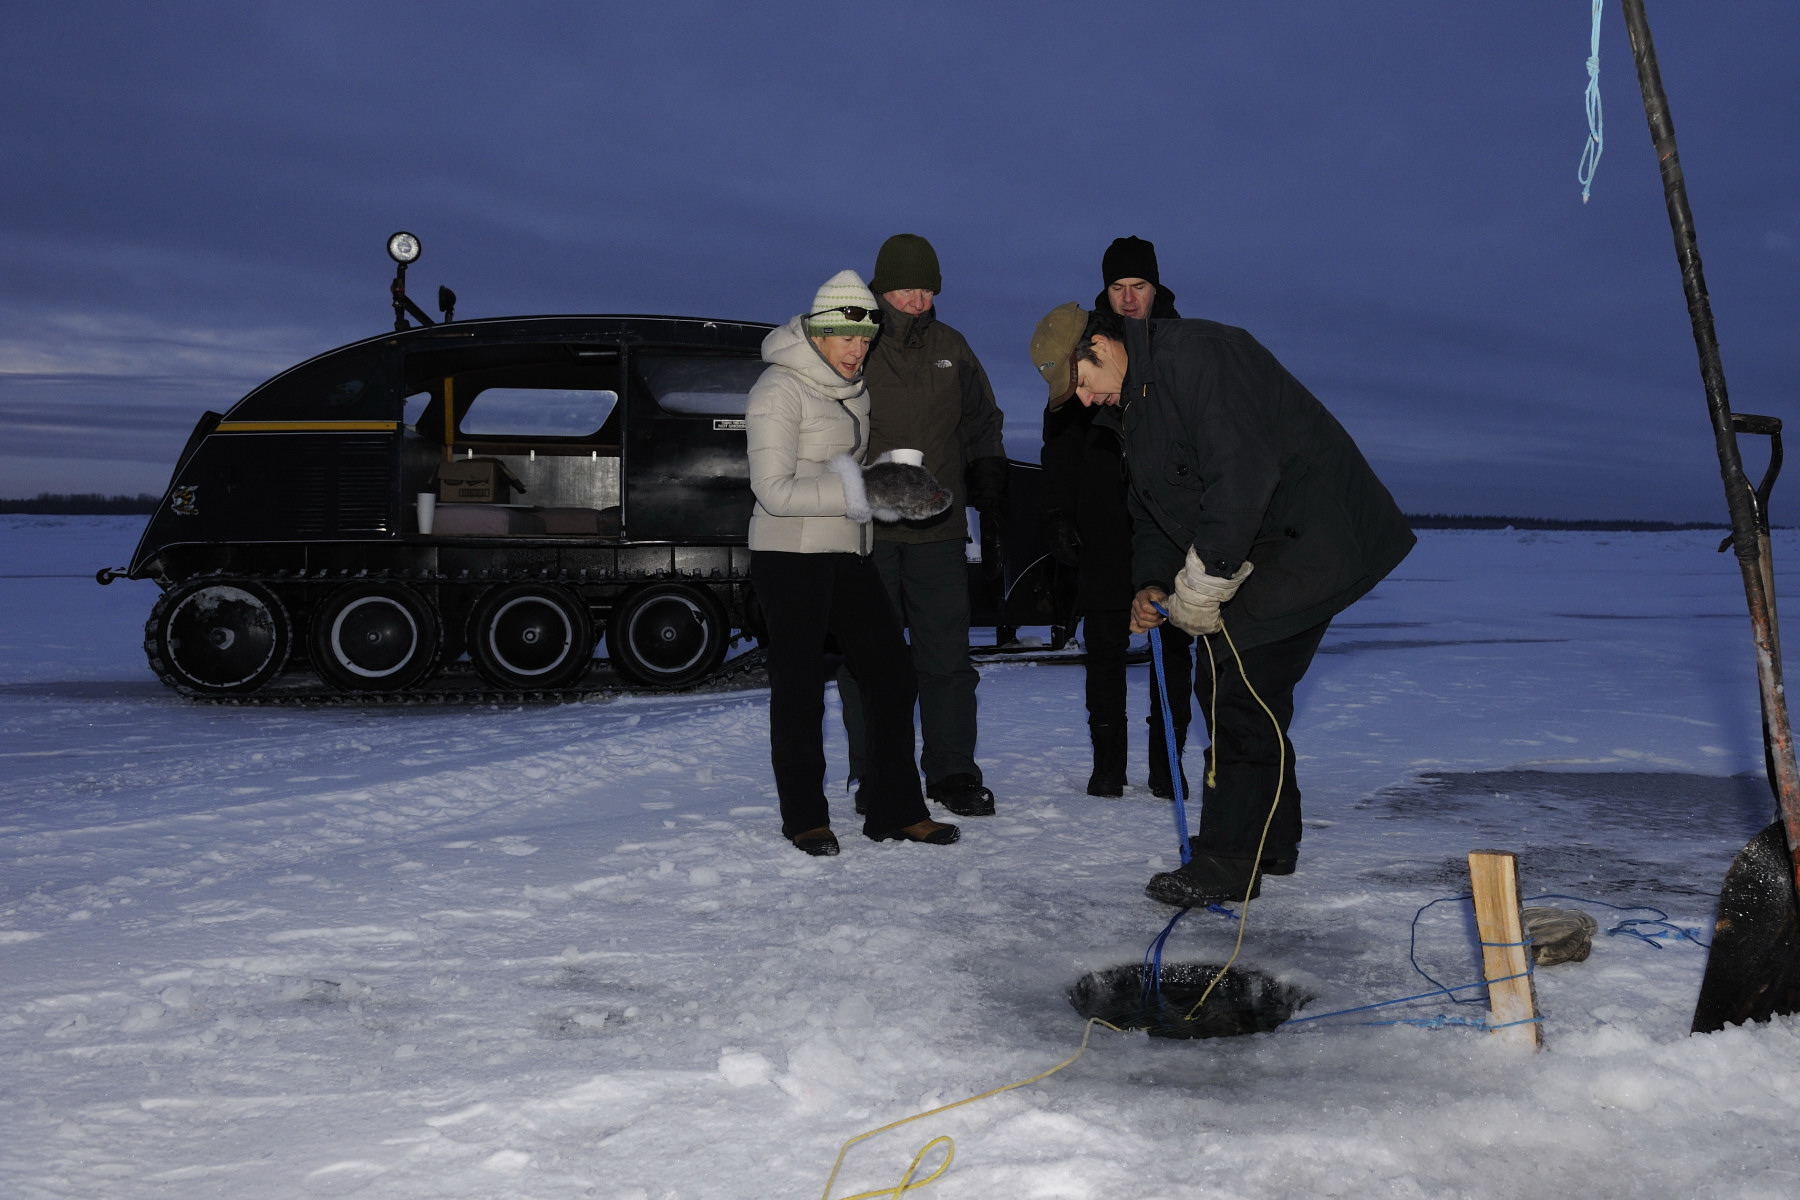 Their Excellencies were introduced to Shawn Buckley, a local fisherman from Hay River, who gave an ice fishing demonstration and shared with Their Excellencies the challenges they face in the North as they compete in the global fishing market.